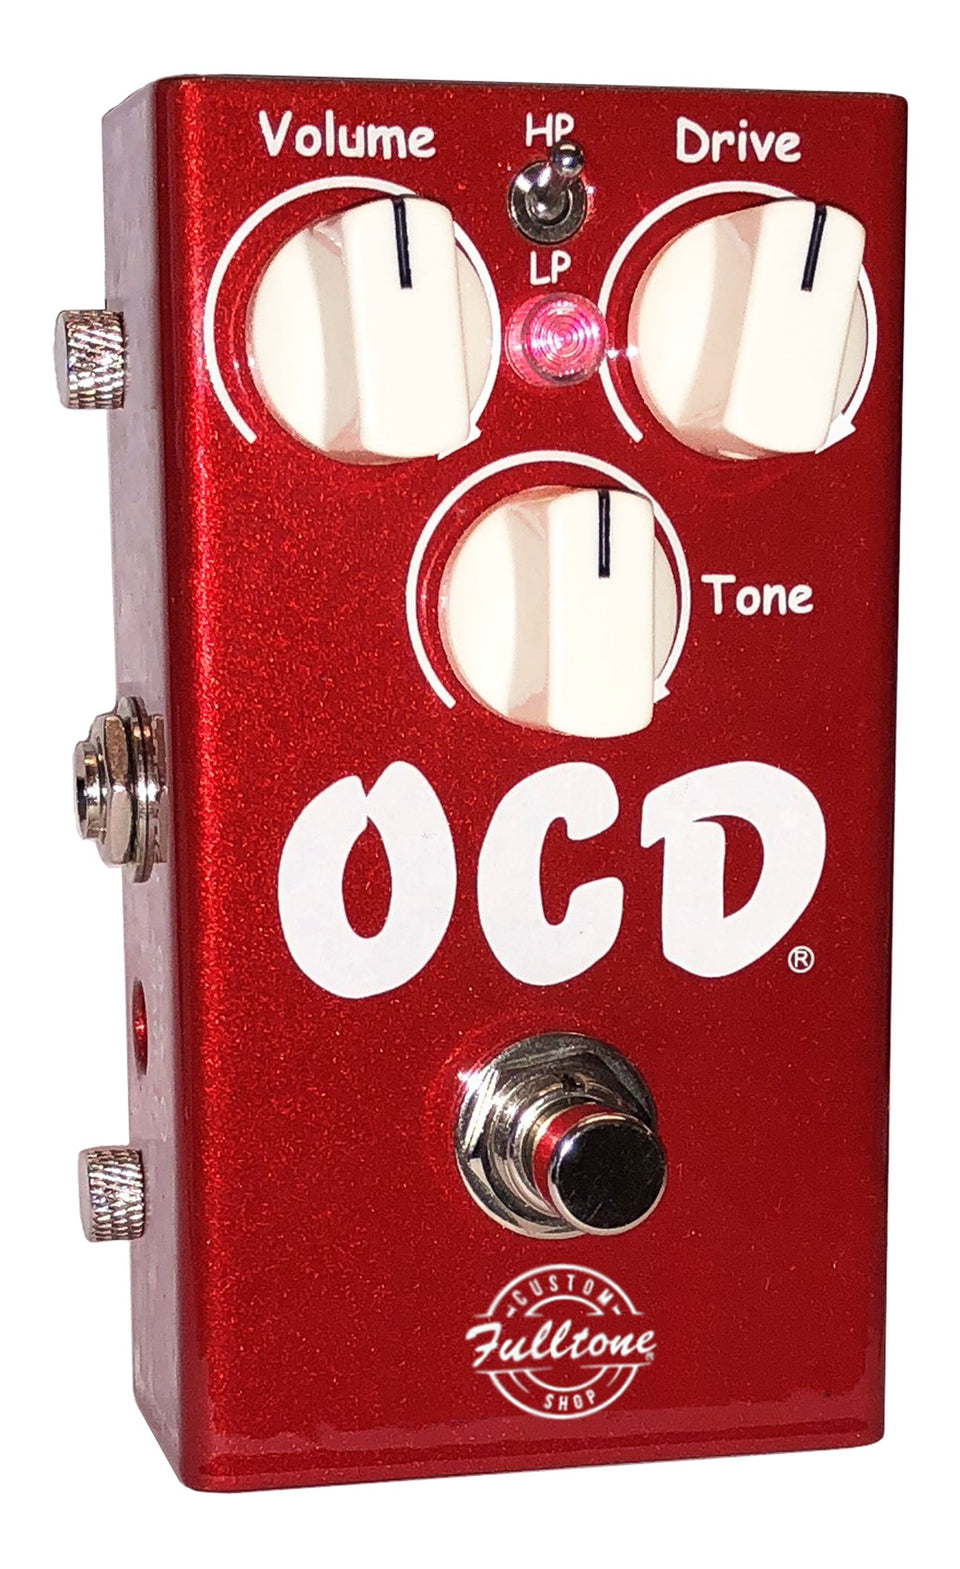 Fulltone Custom Shop Limited Edition OCD Overdrive Guitar Effects Pedal - Candy Apple Red